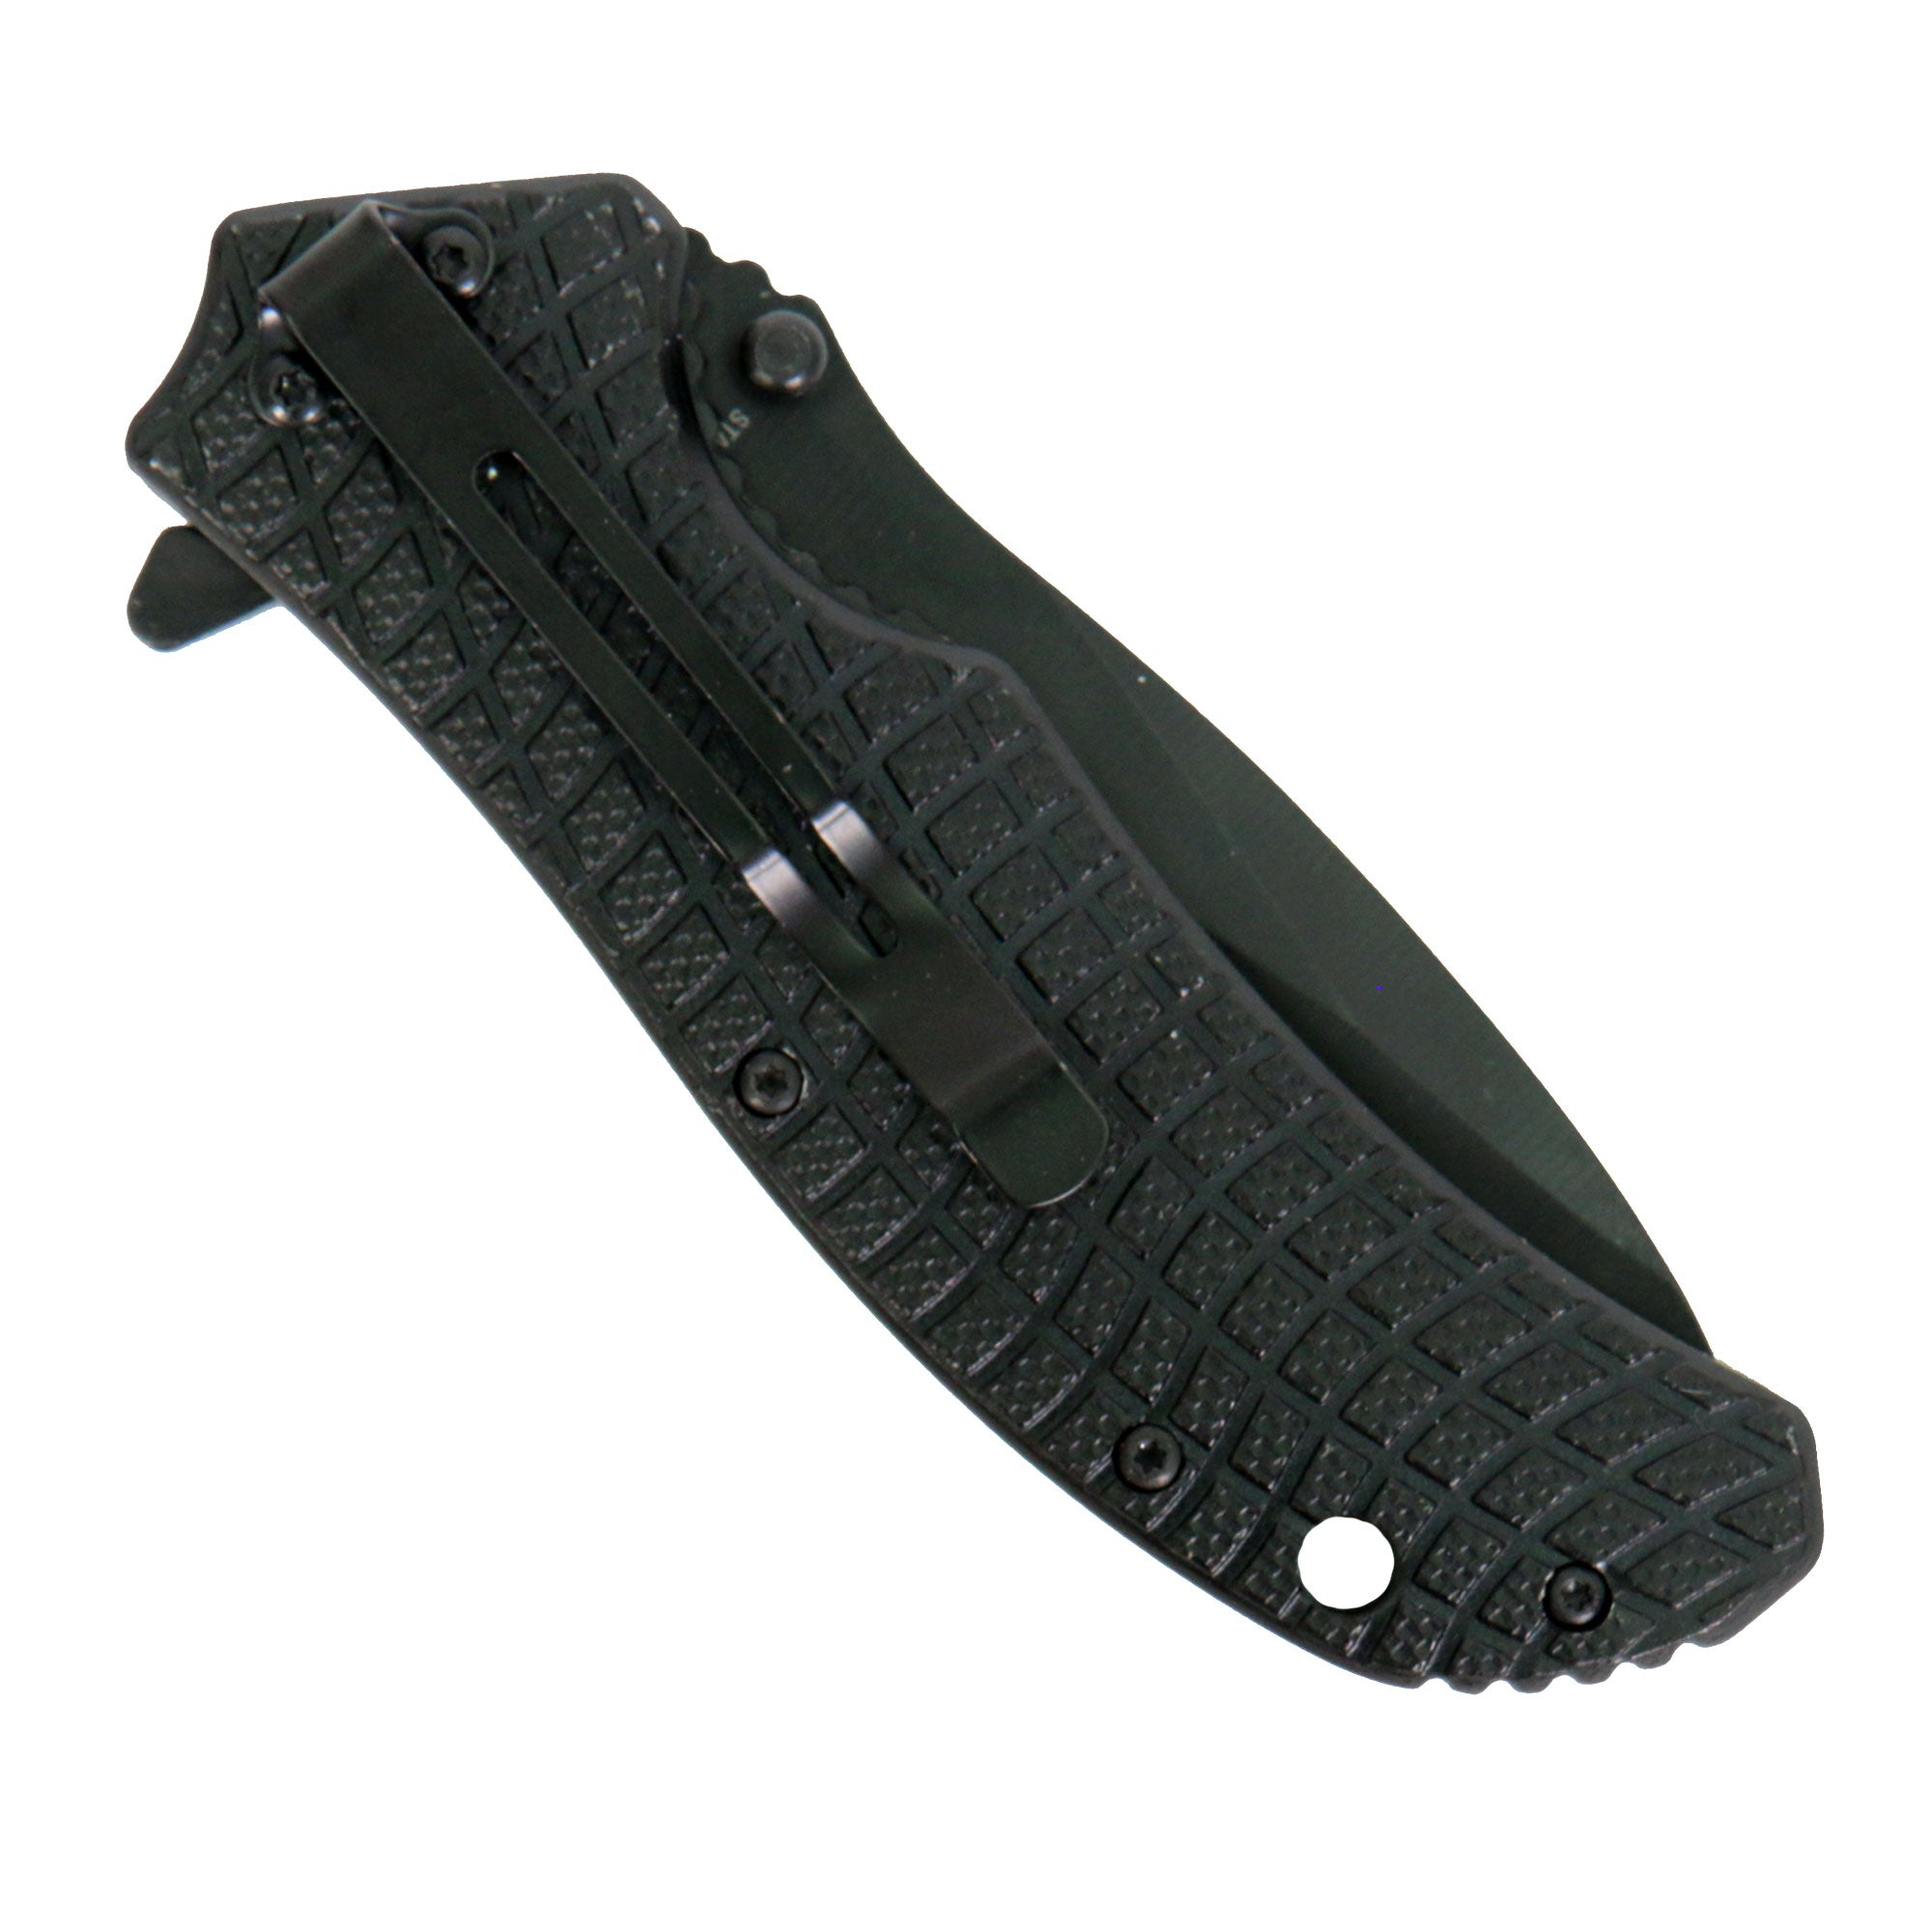 Hot Leathers Knife Tactile Textured Assist